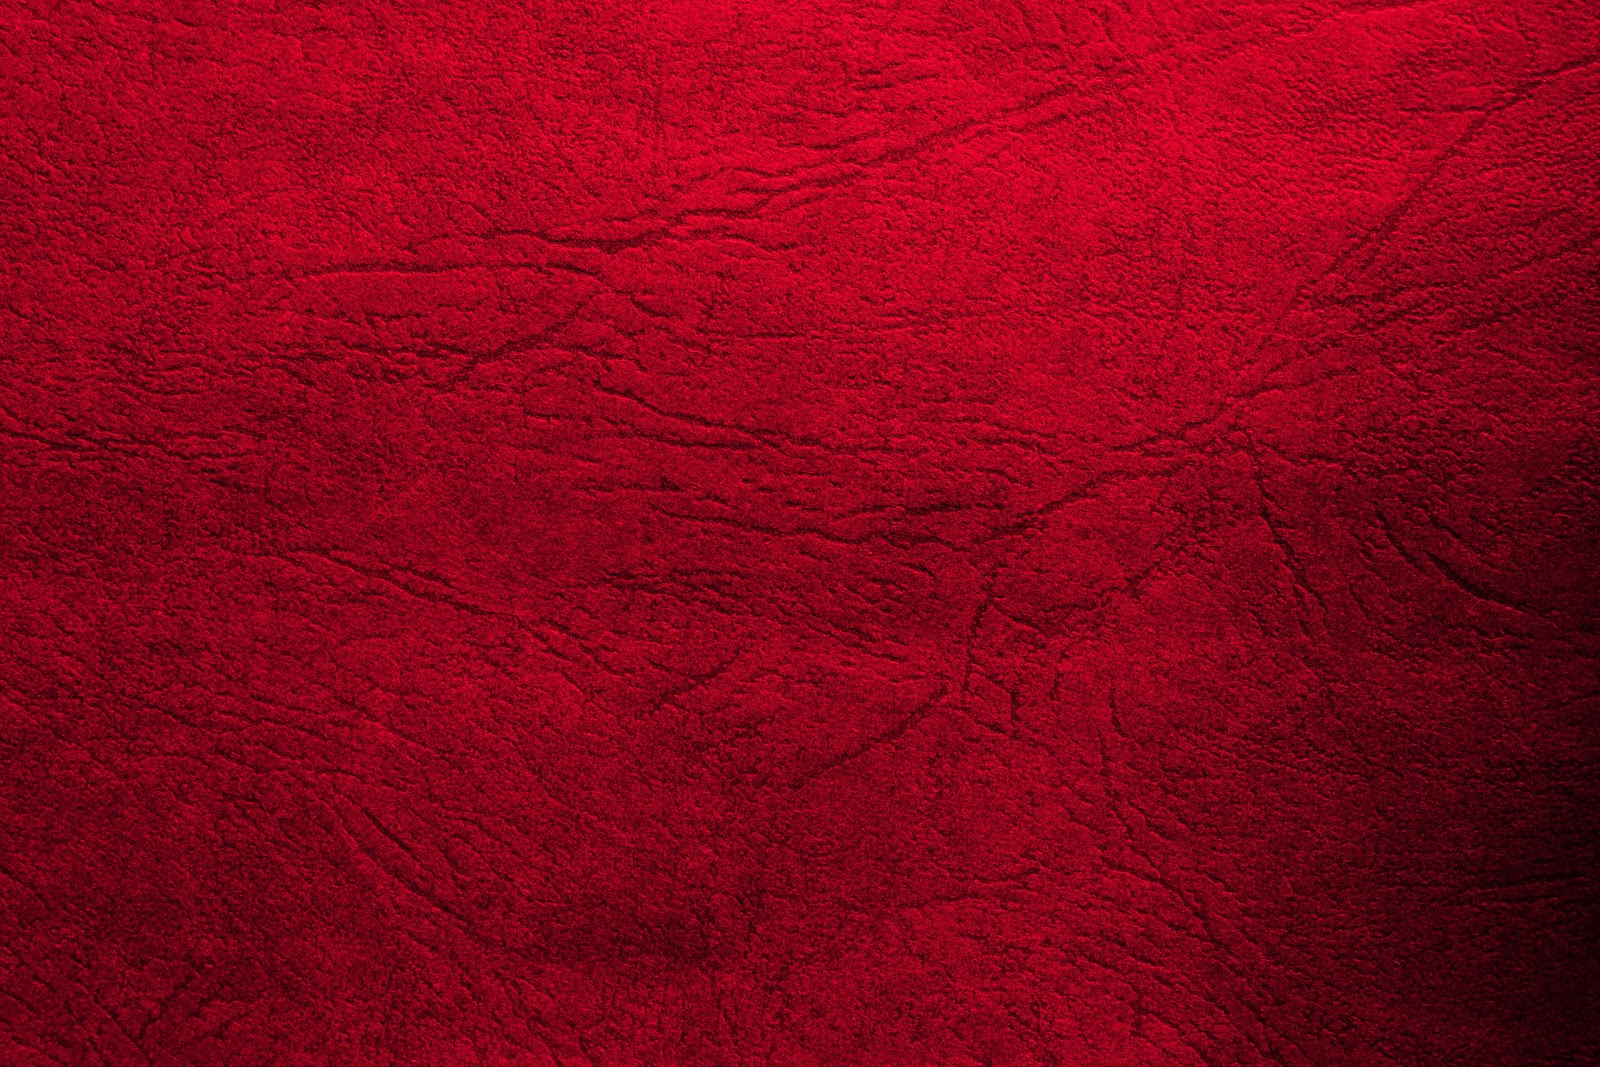 Wallpaper Backgrounds Red Texture Wallpapers 1600x1067